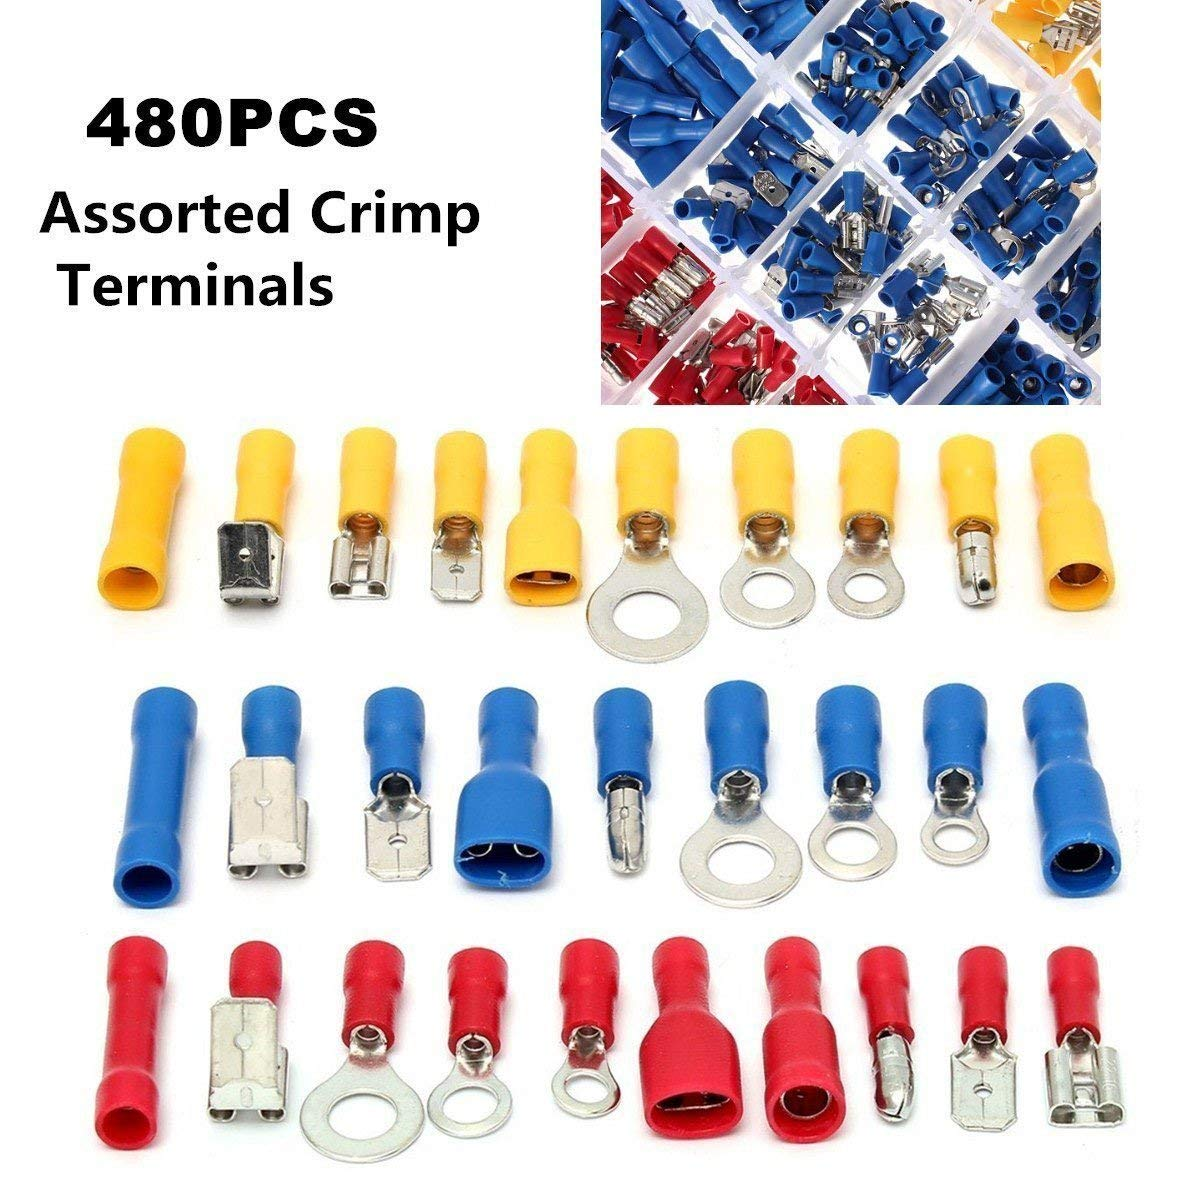 480pcs Premium Quality Assorted Insulated Electrical Wire Terminals Crimp Connectors Ring Spade Mixed Set